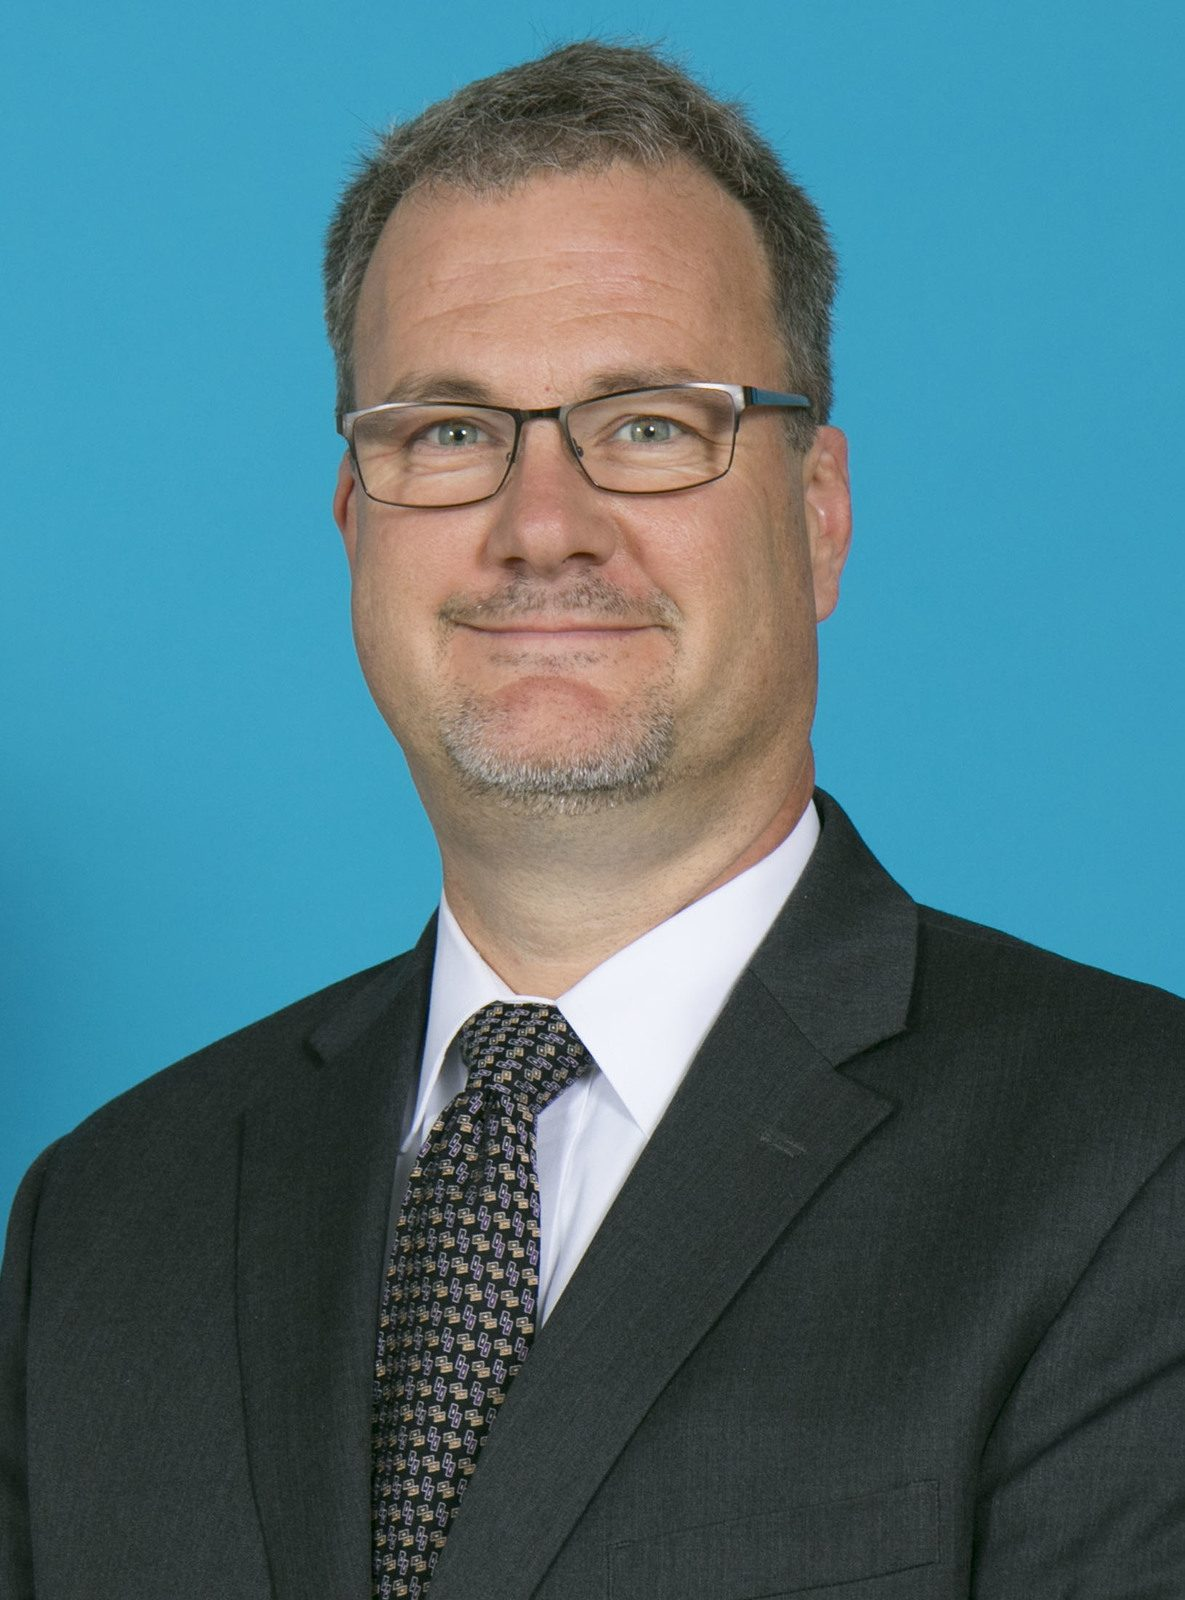 Photo of Aj Peck - Morgan Stanley